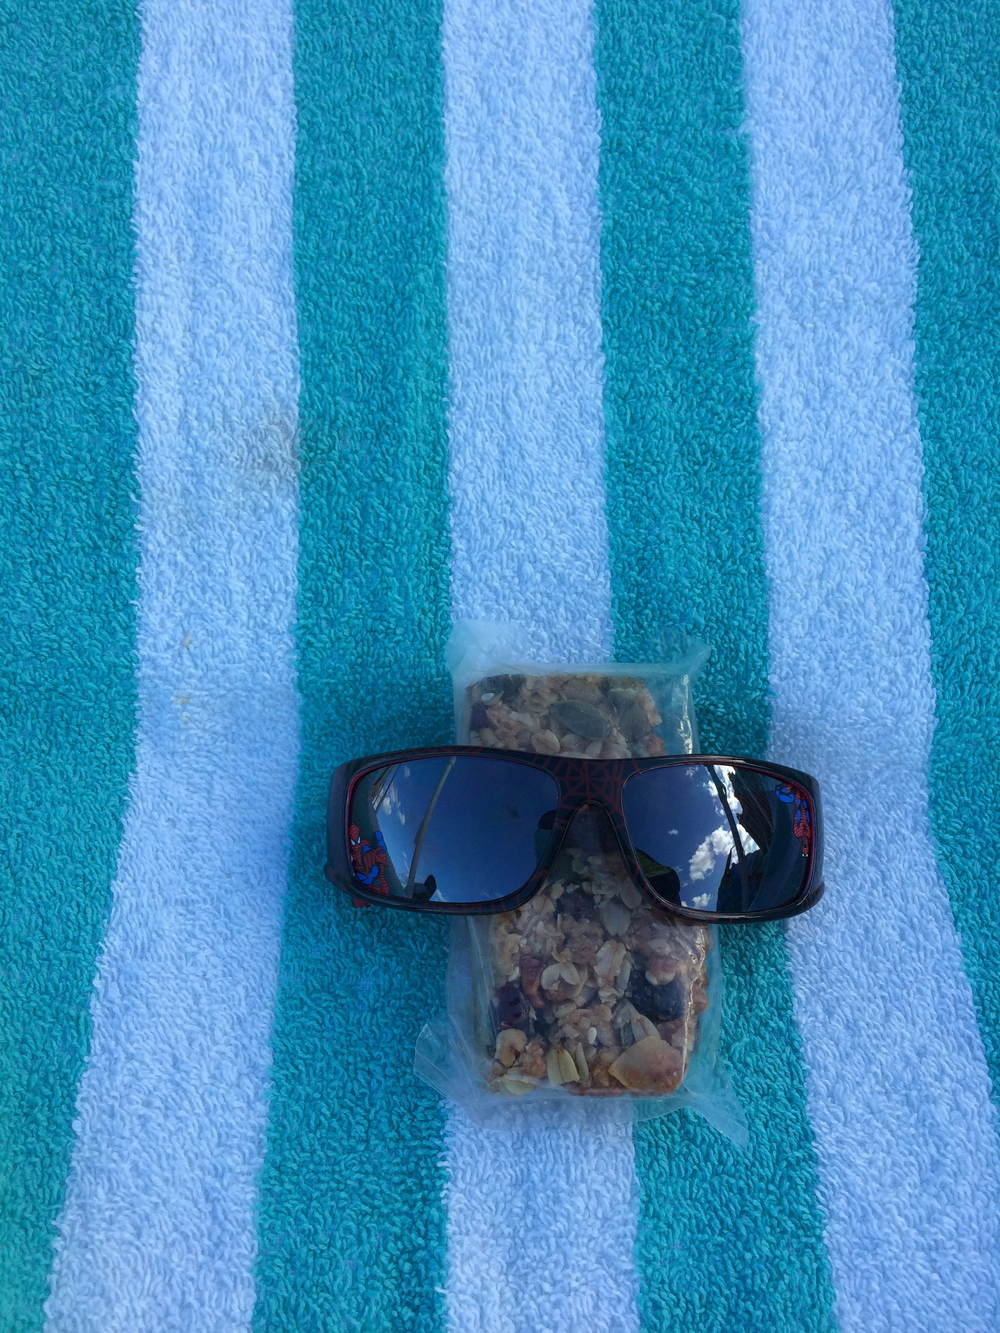 Sana from Houston, Texas sent this photo from her vacation on Paradise Island inBermuda. Stripedbeach towel, Spidey shades, Nuts and Glory granola bar....paradise!!